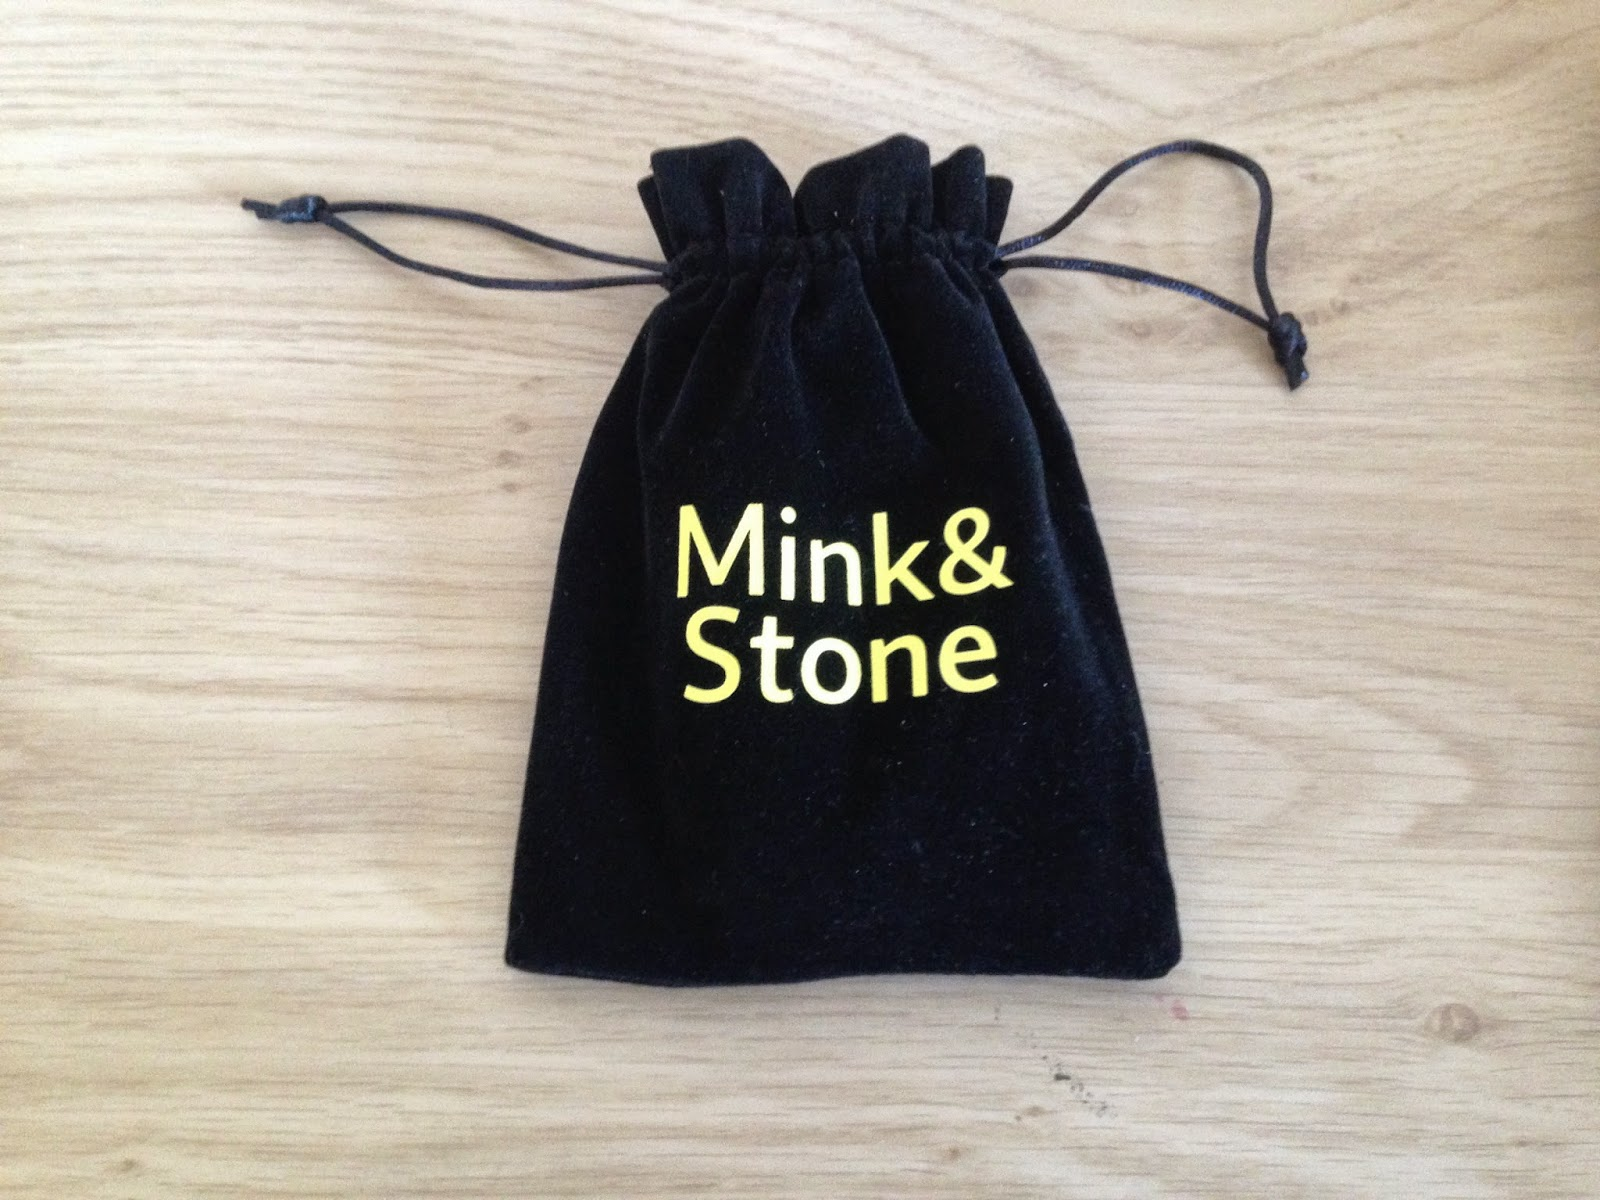 Mink and stone